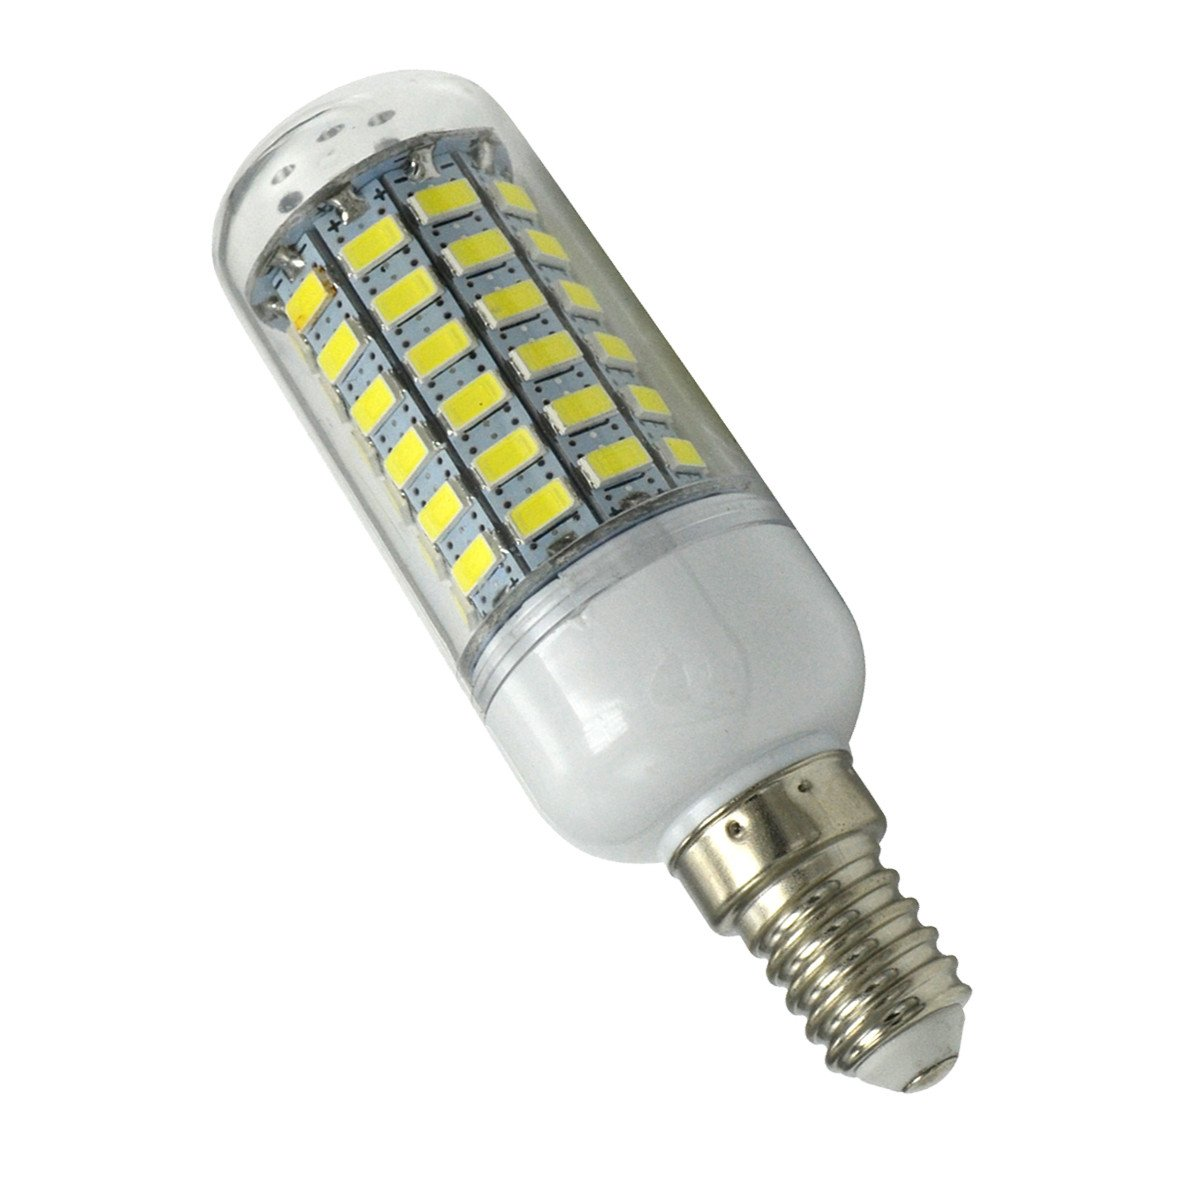 Aoxdi 5X LED E14 Bulbs Light 10W, Cool White, 69 SMD 5730 Edison Screw LED Light Bulbs Lighting, AC220-240V